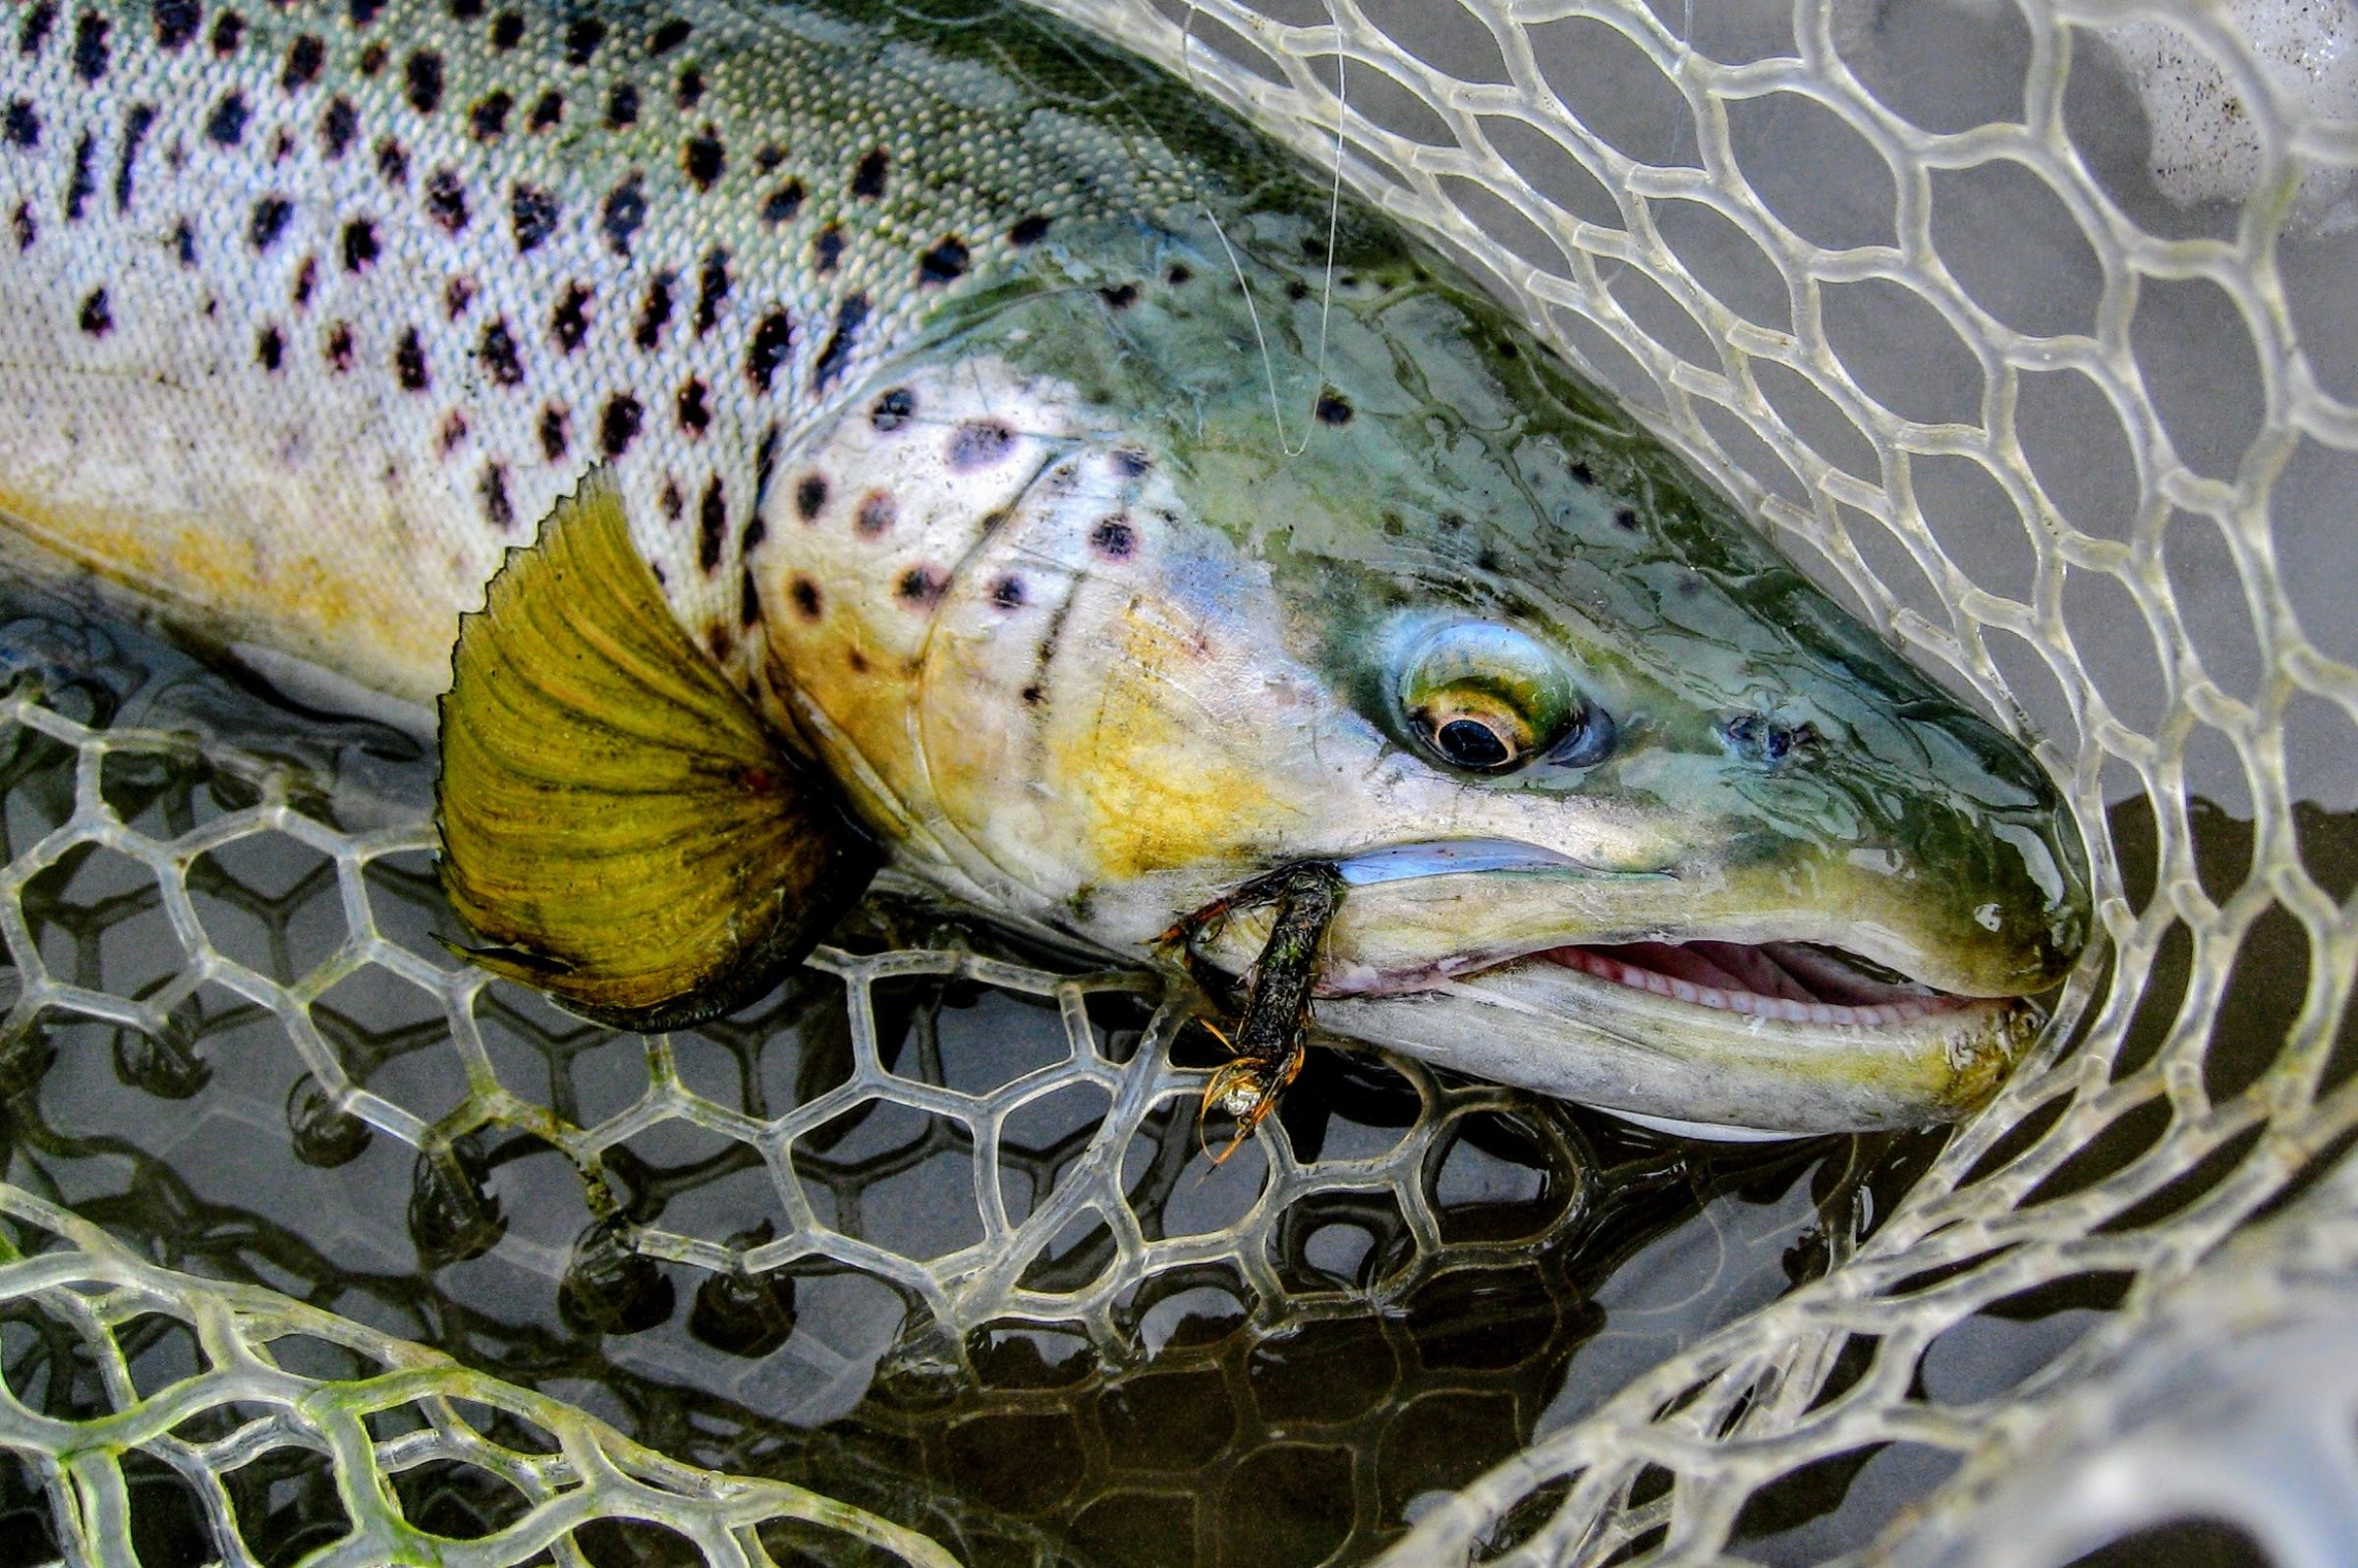 CURRENT SEAMS FLY FISHING